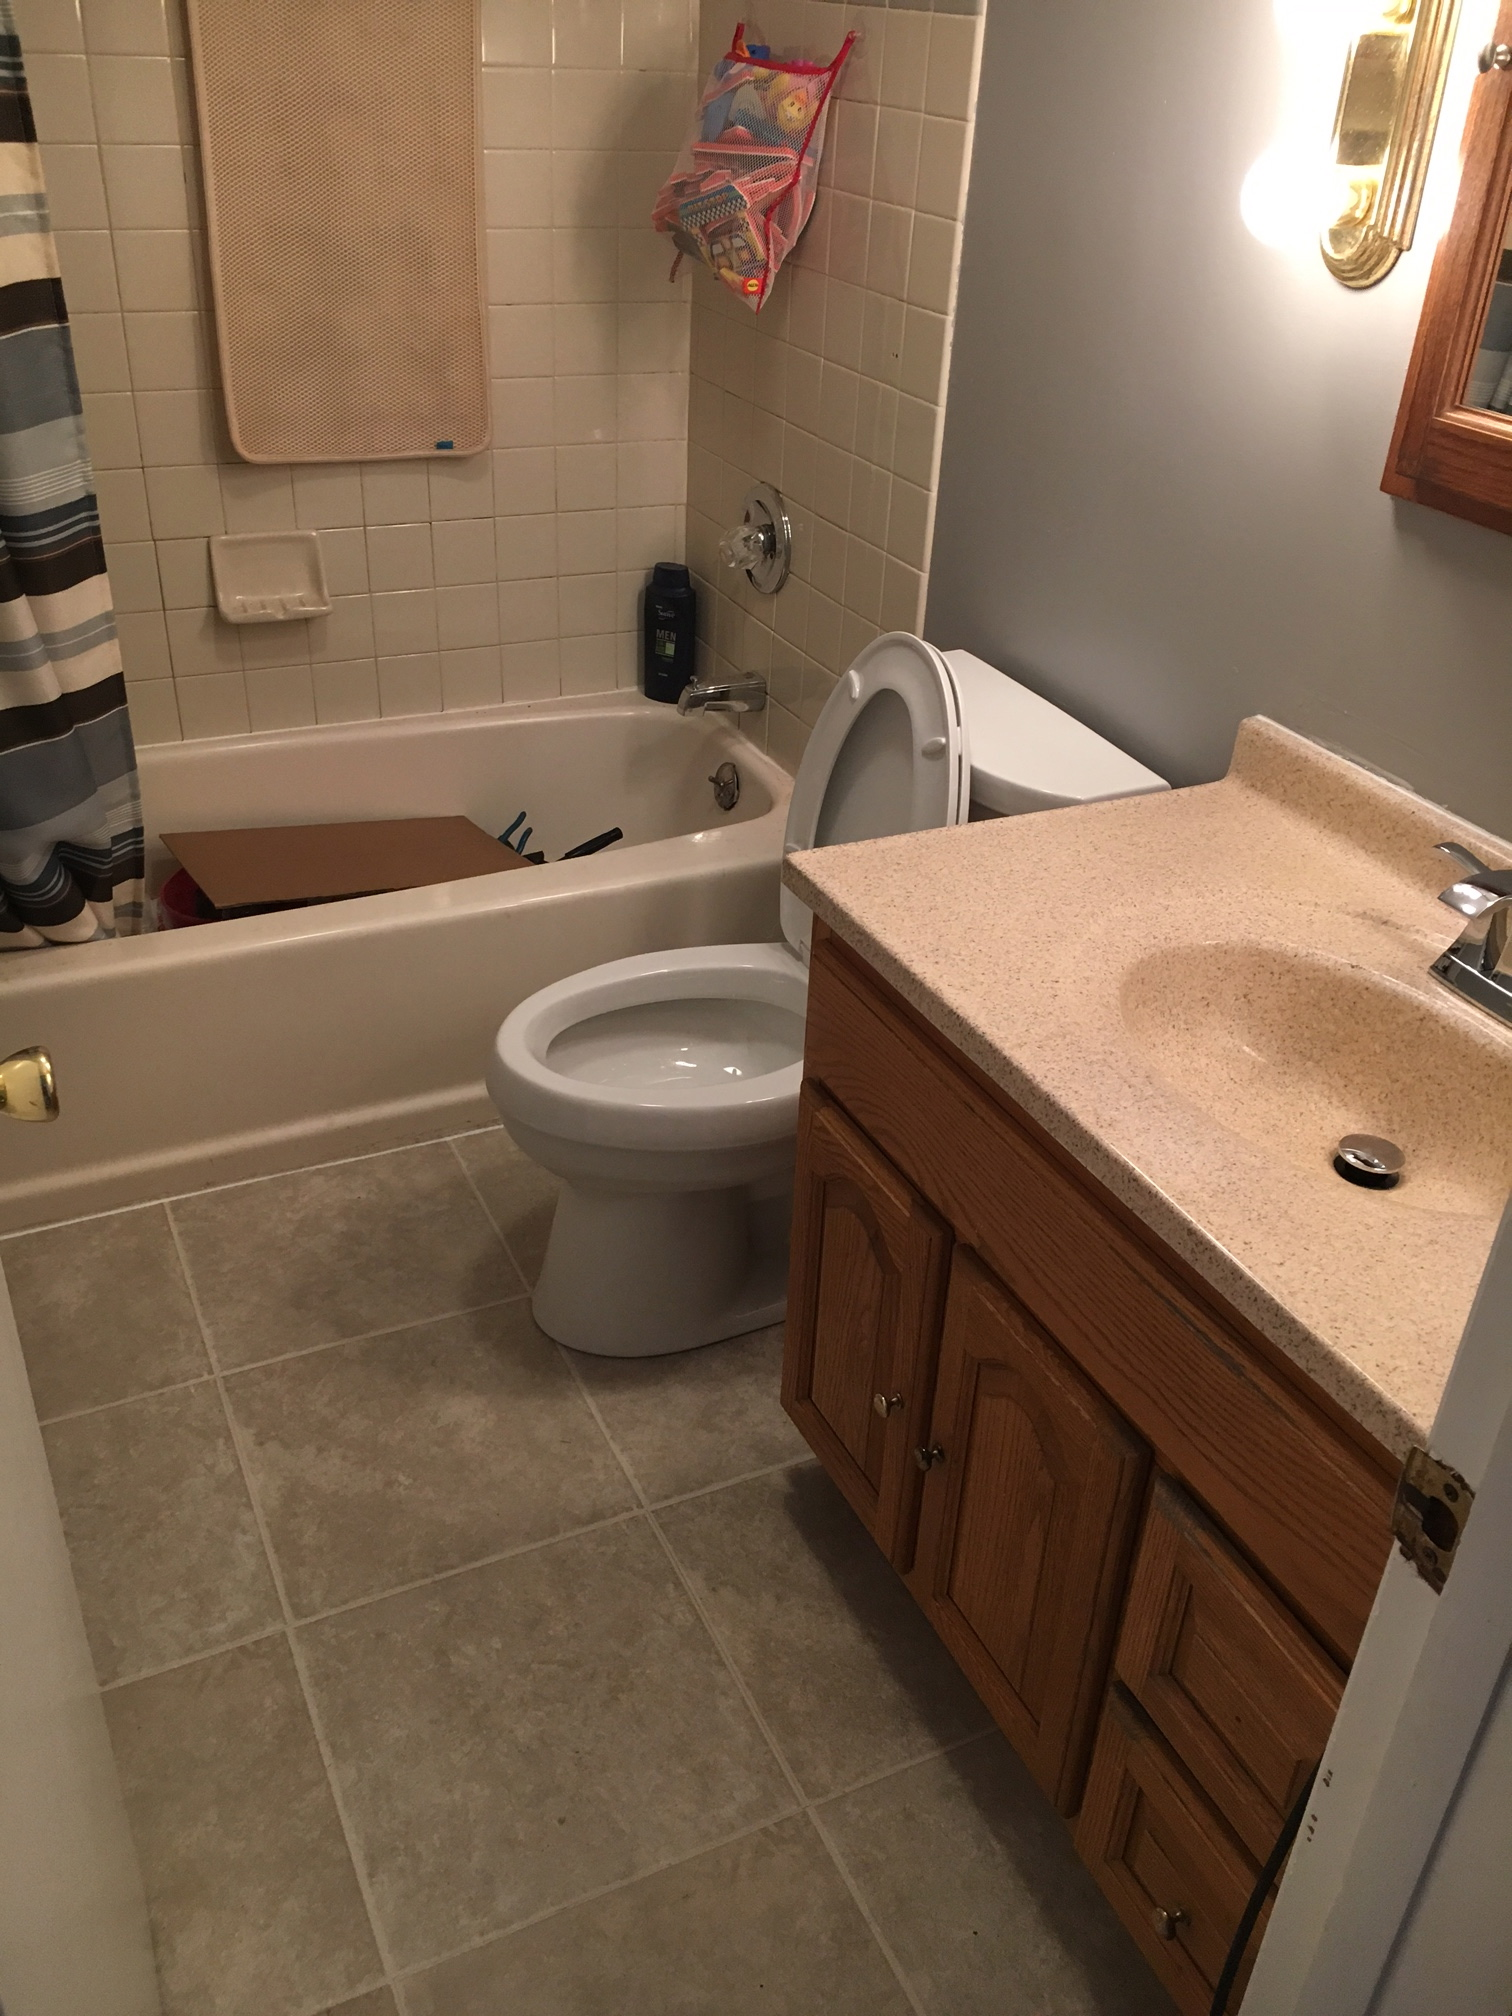 Bathroom Floor Remodel After 2